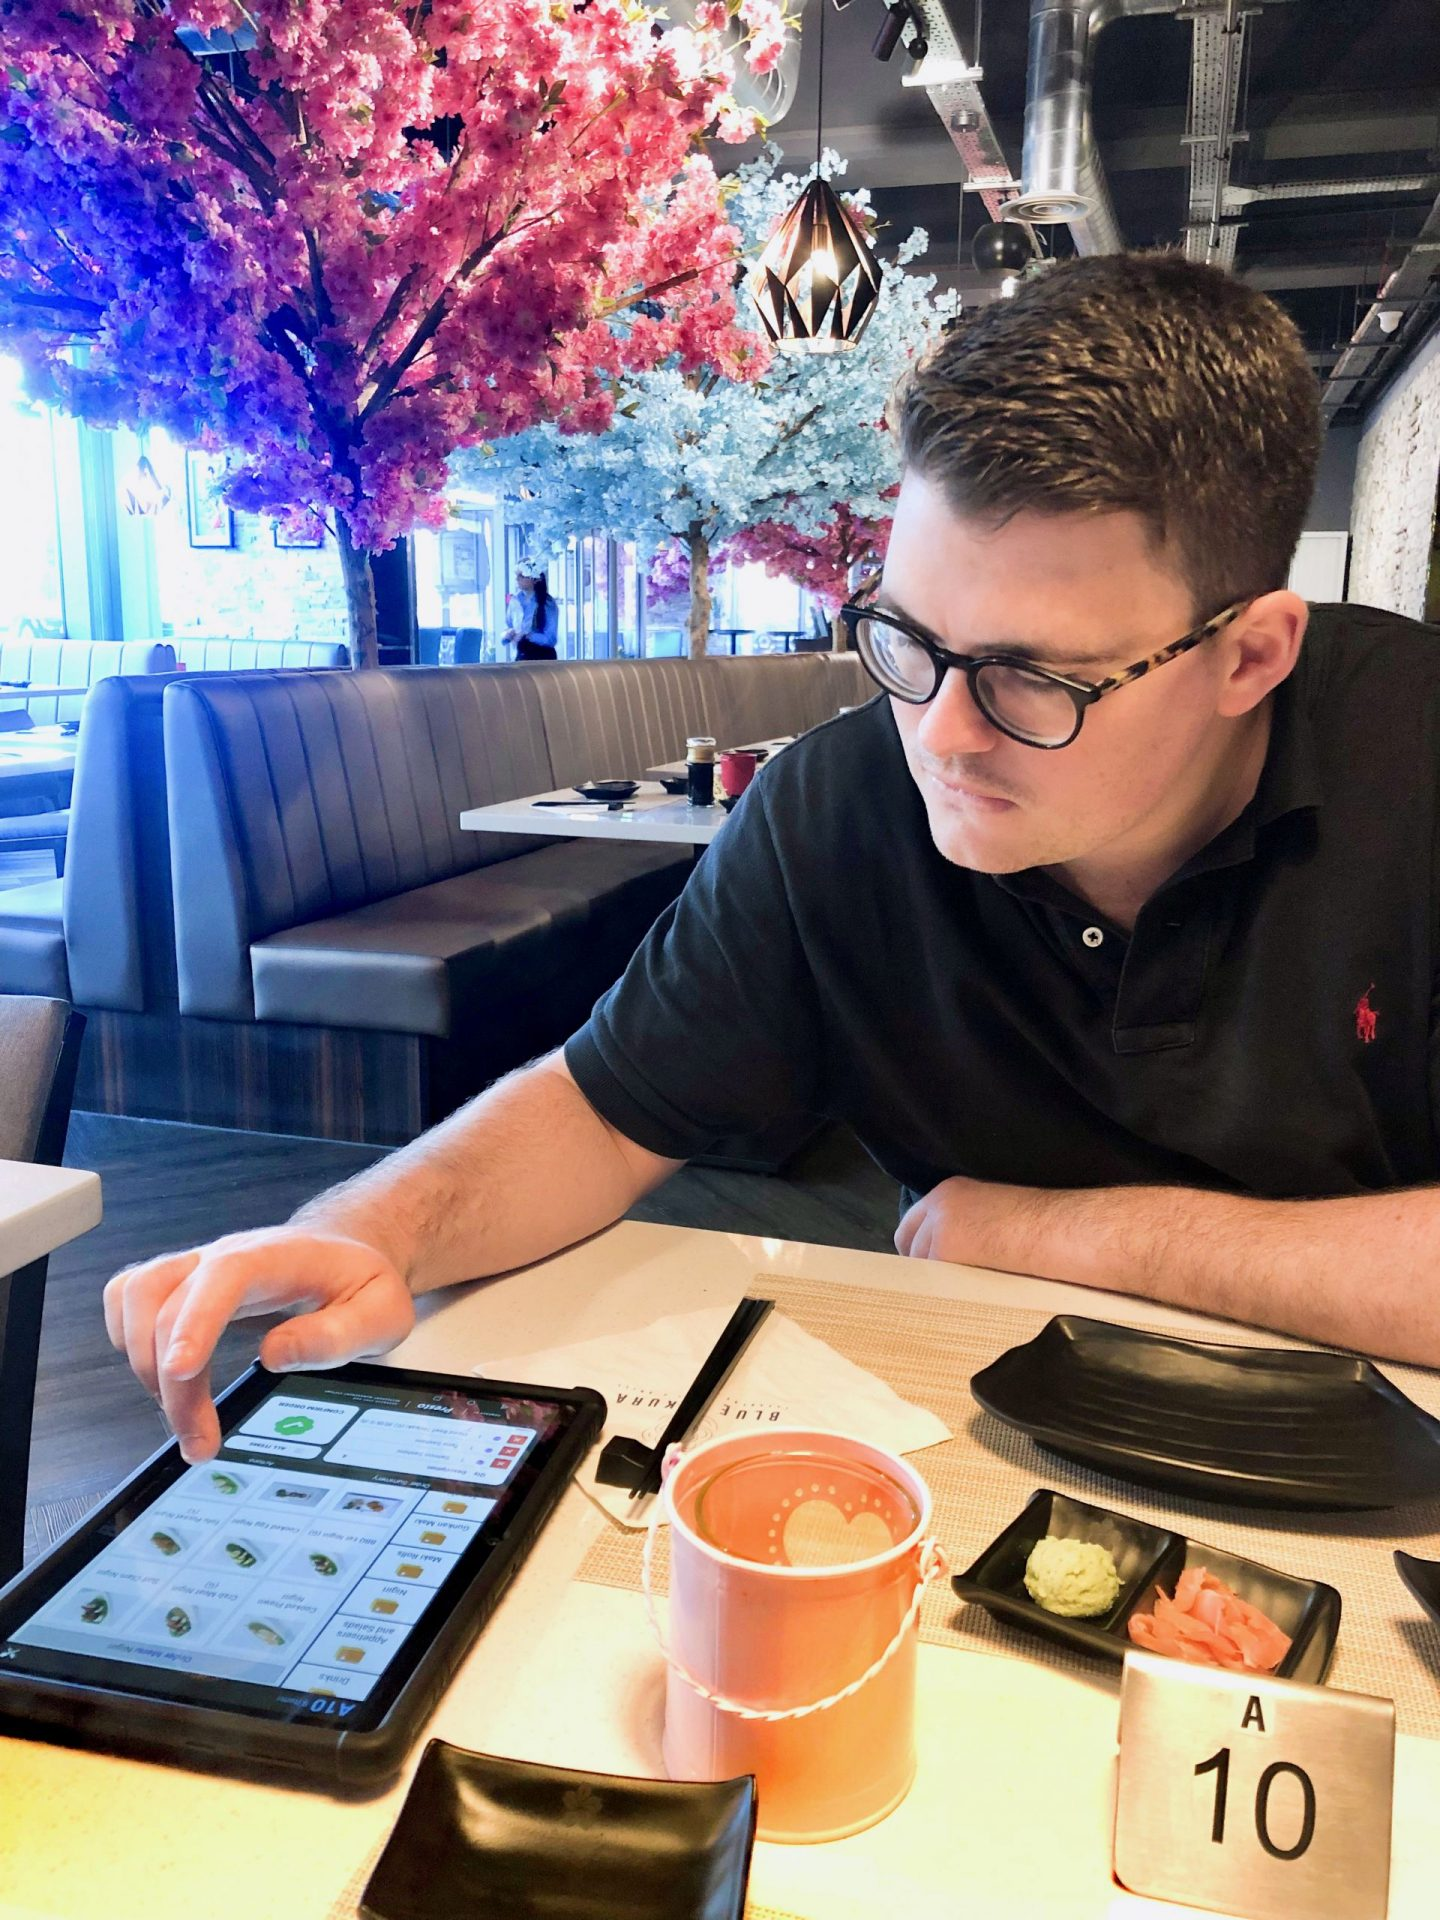 Nell's boyfriend Billy ordering food on a tablet at Blue Sakura Leeds. He's concentrating and slightly biting his lip in anticipation.